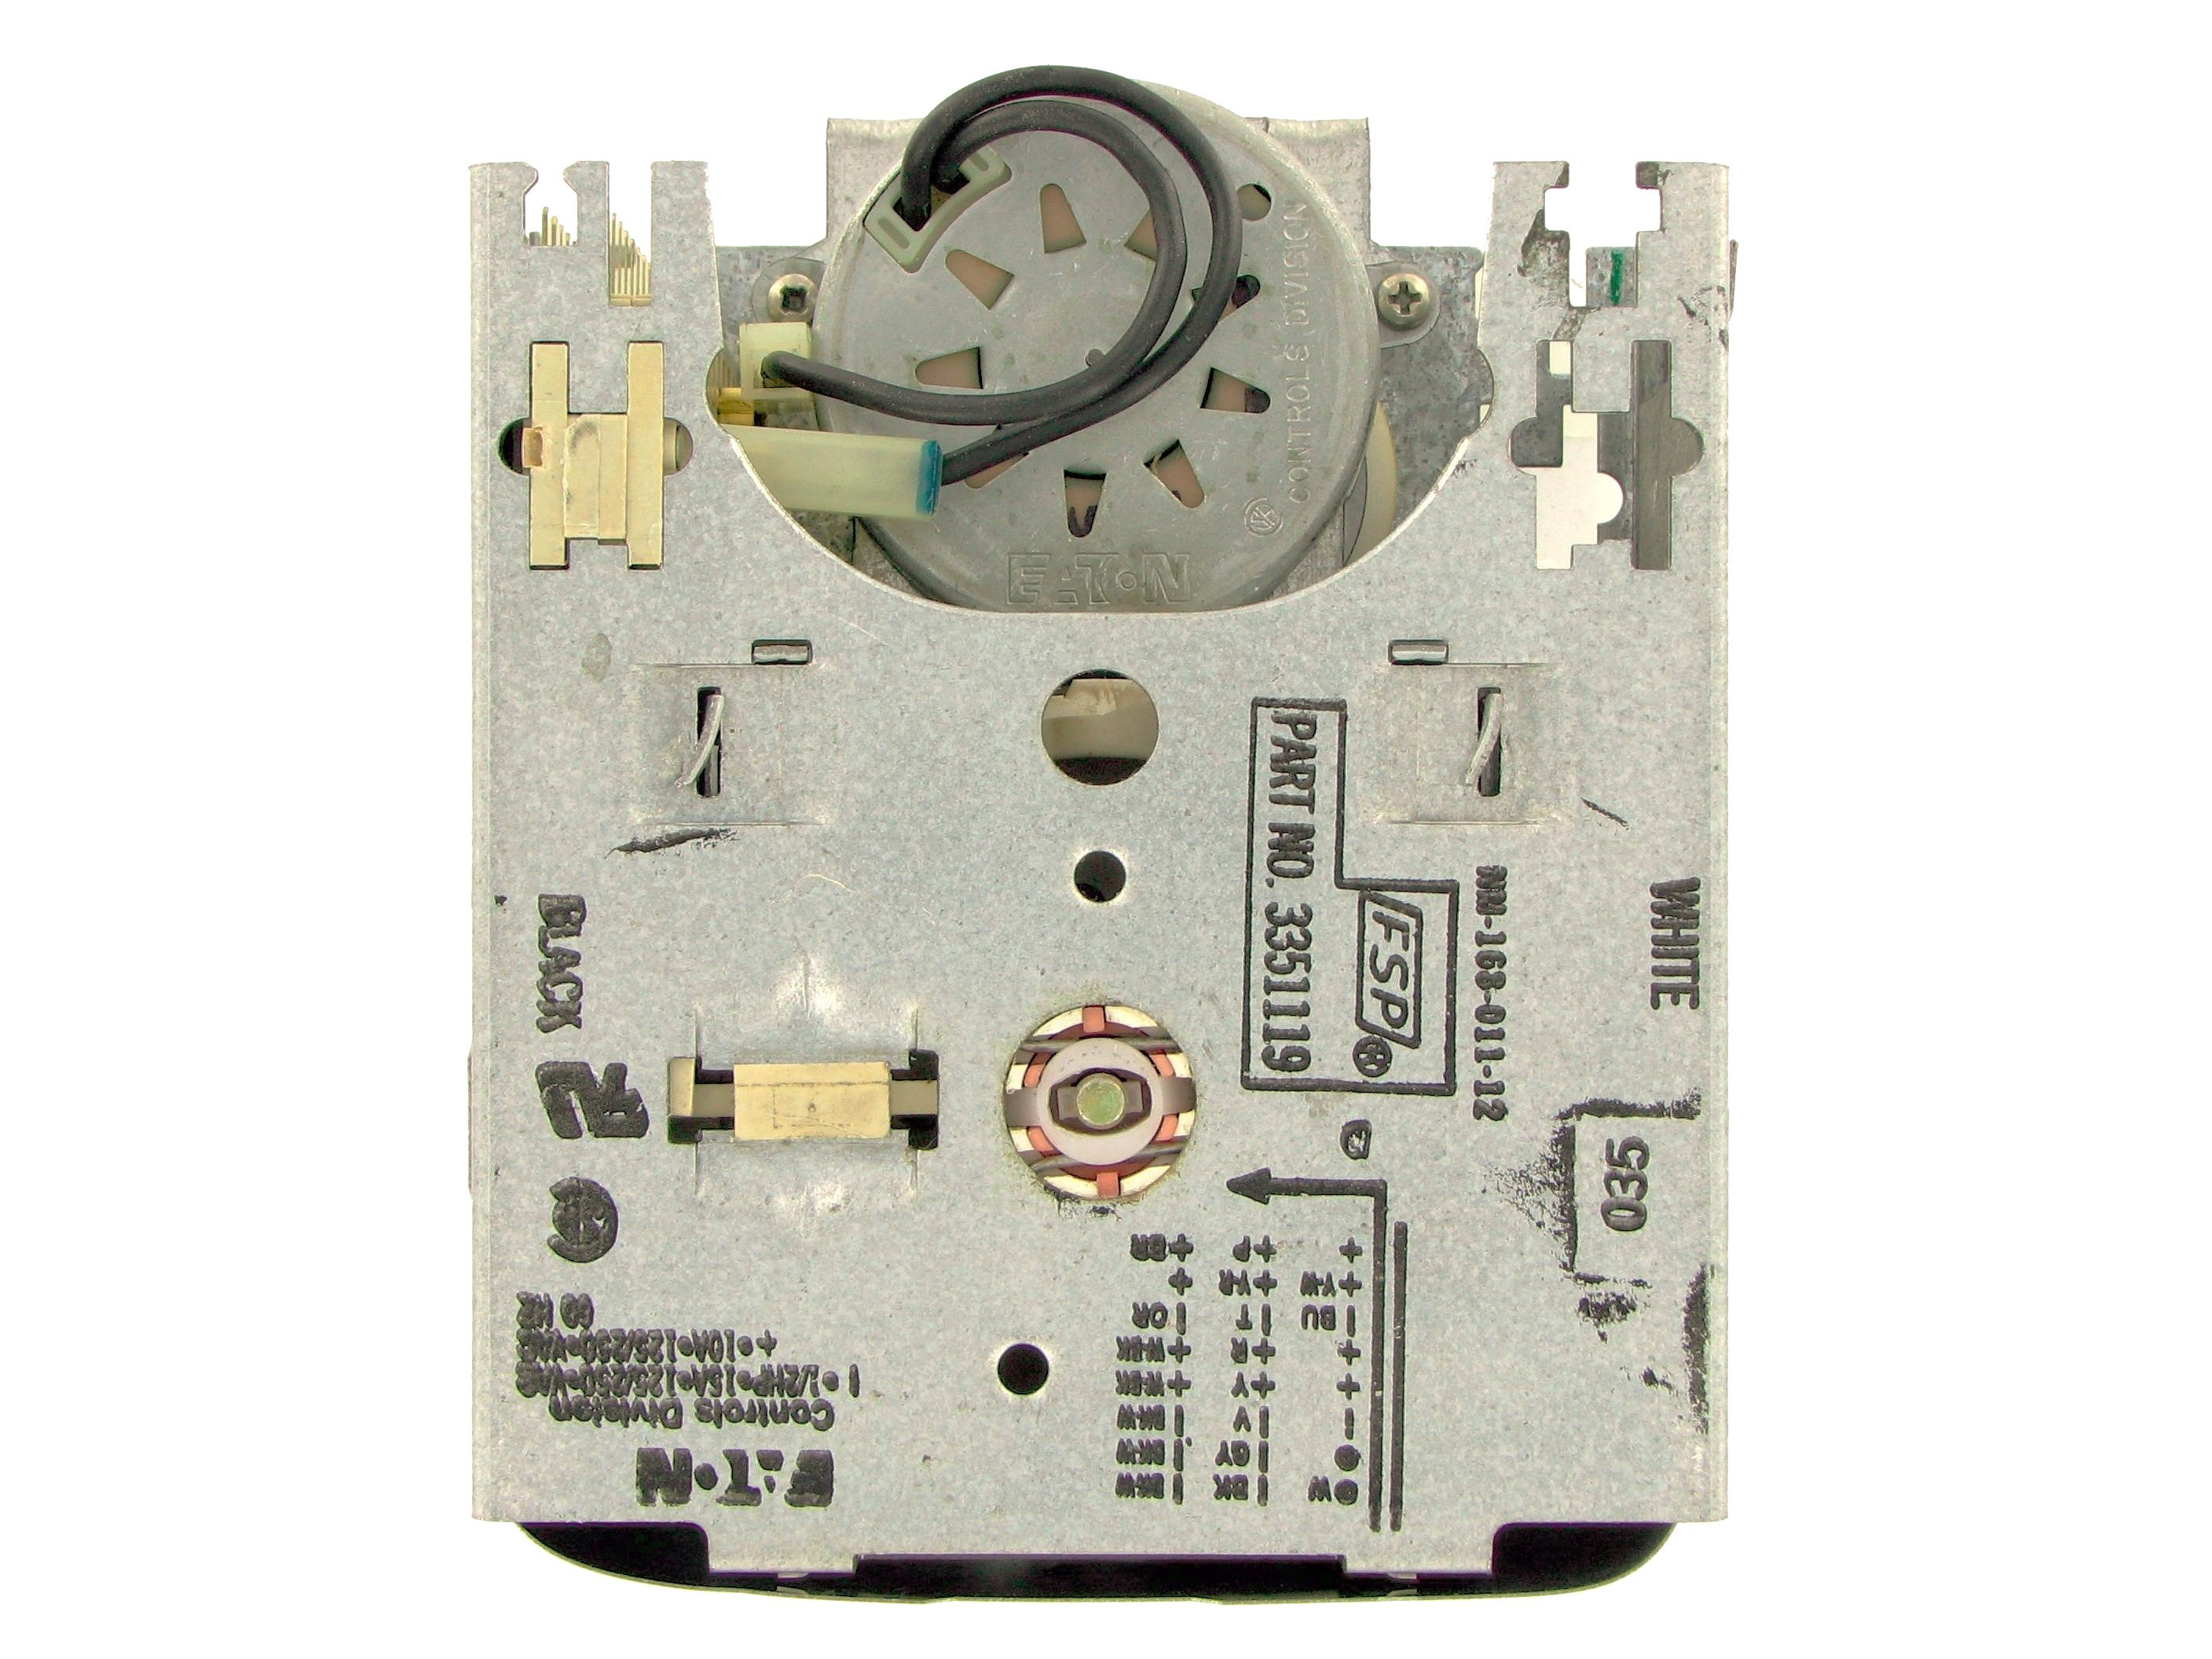 Whirlpool 3351119 Wp3351119 Laundry Washer Timer Control Boards Electronic Circuit For Washing Machine Board